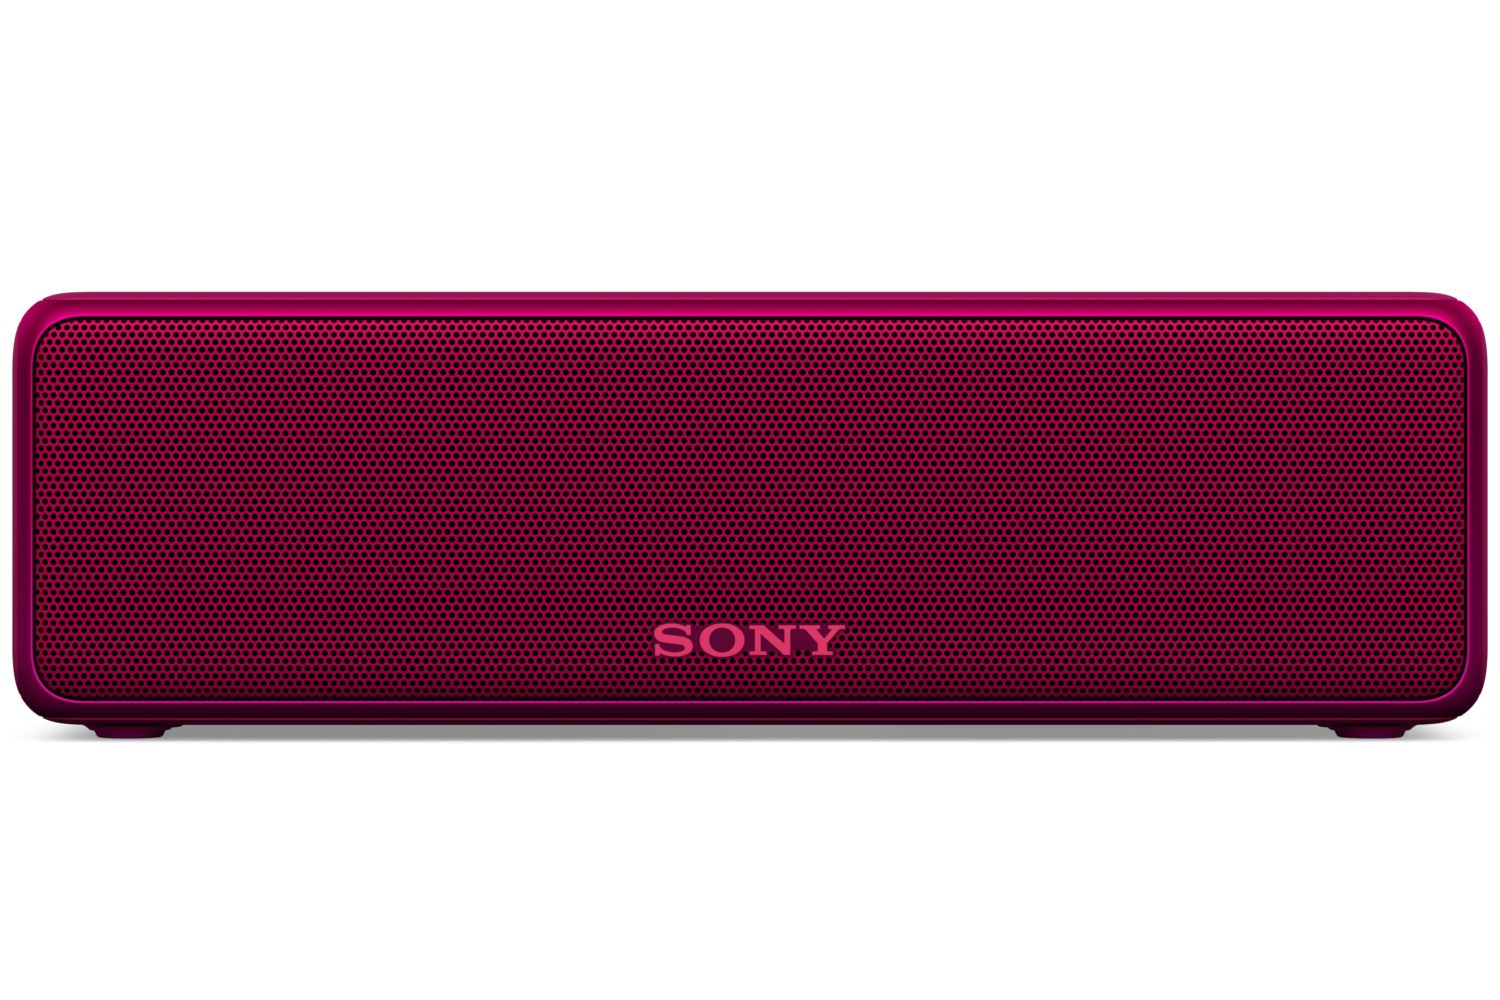 Sony Wireless Speaker | SRSHG1P.EUB